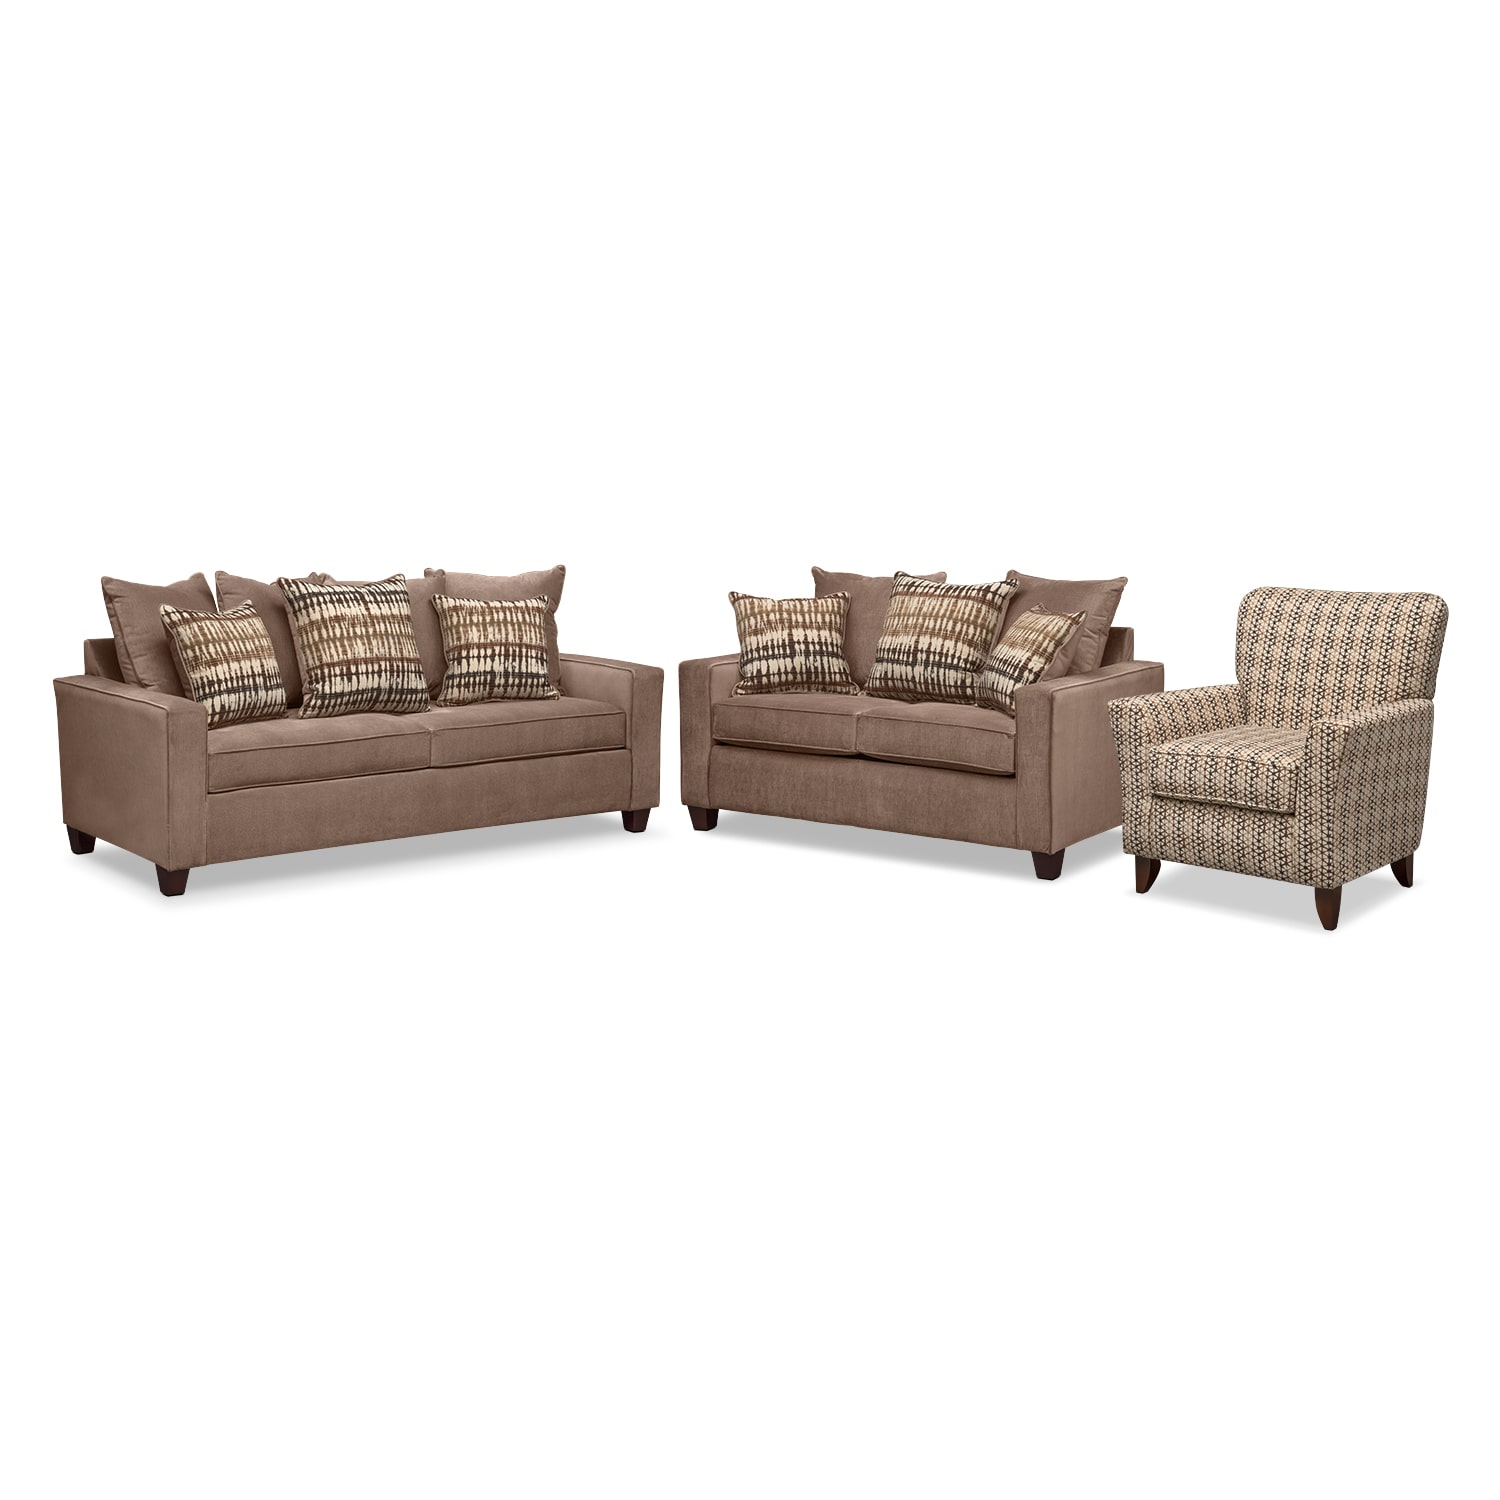 Bryden Sofa, Loveseat and Accent Chair Set - Chocolate